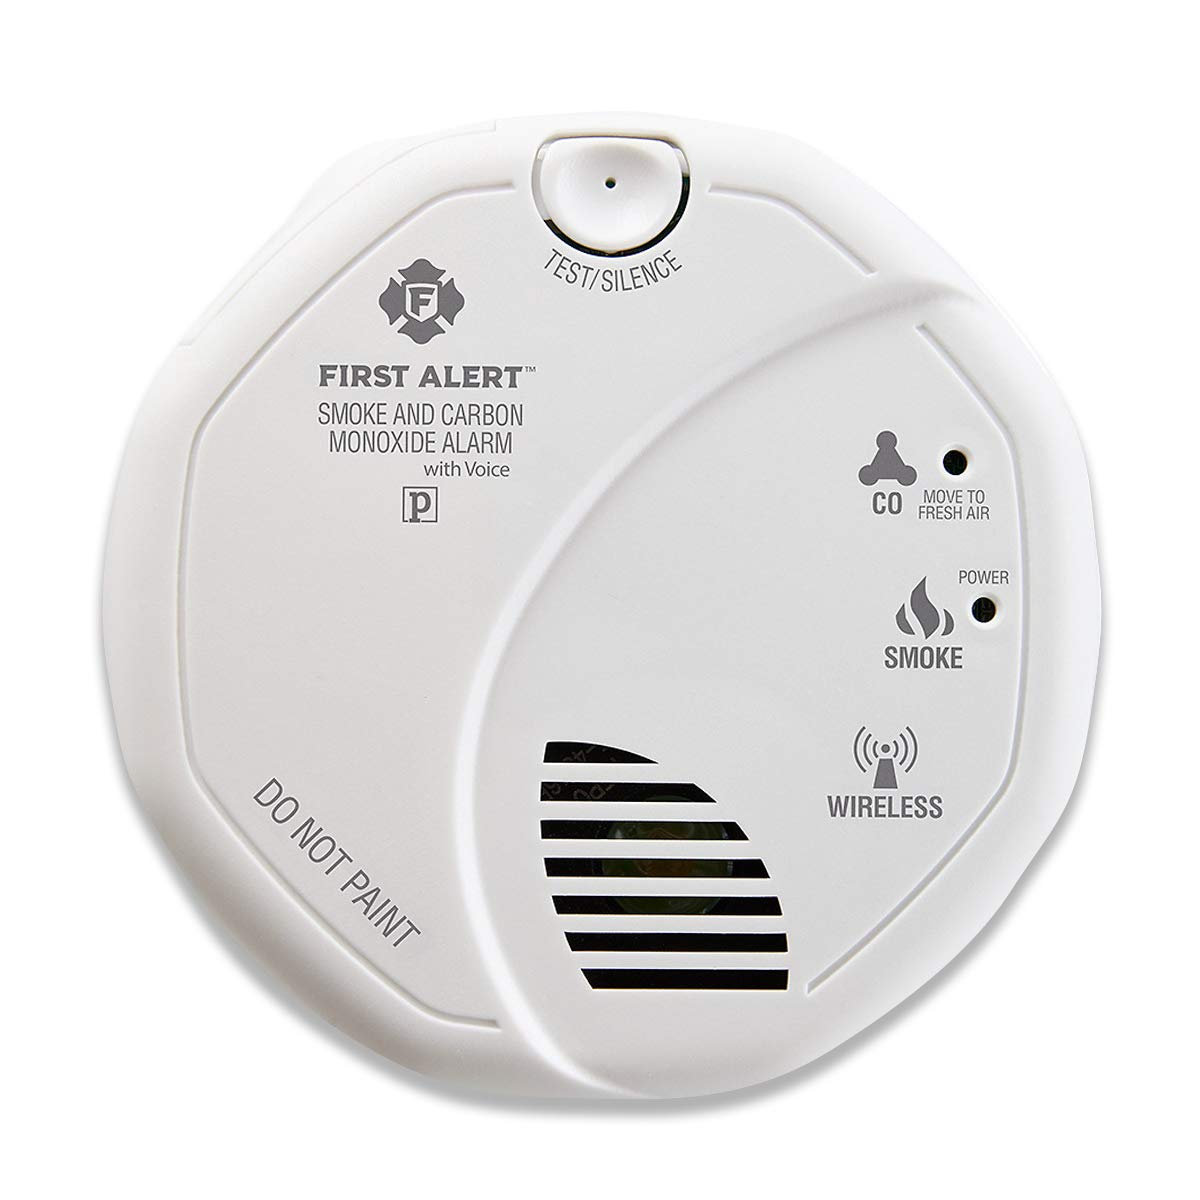 First Alert SCO501CN-3ST Battery Operated Combination Smoke and Carbon Monoxide Alarm with Voice Location by First Alert